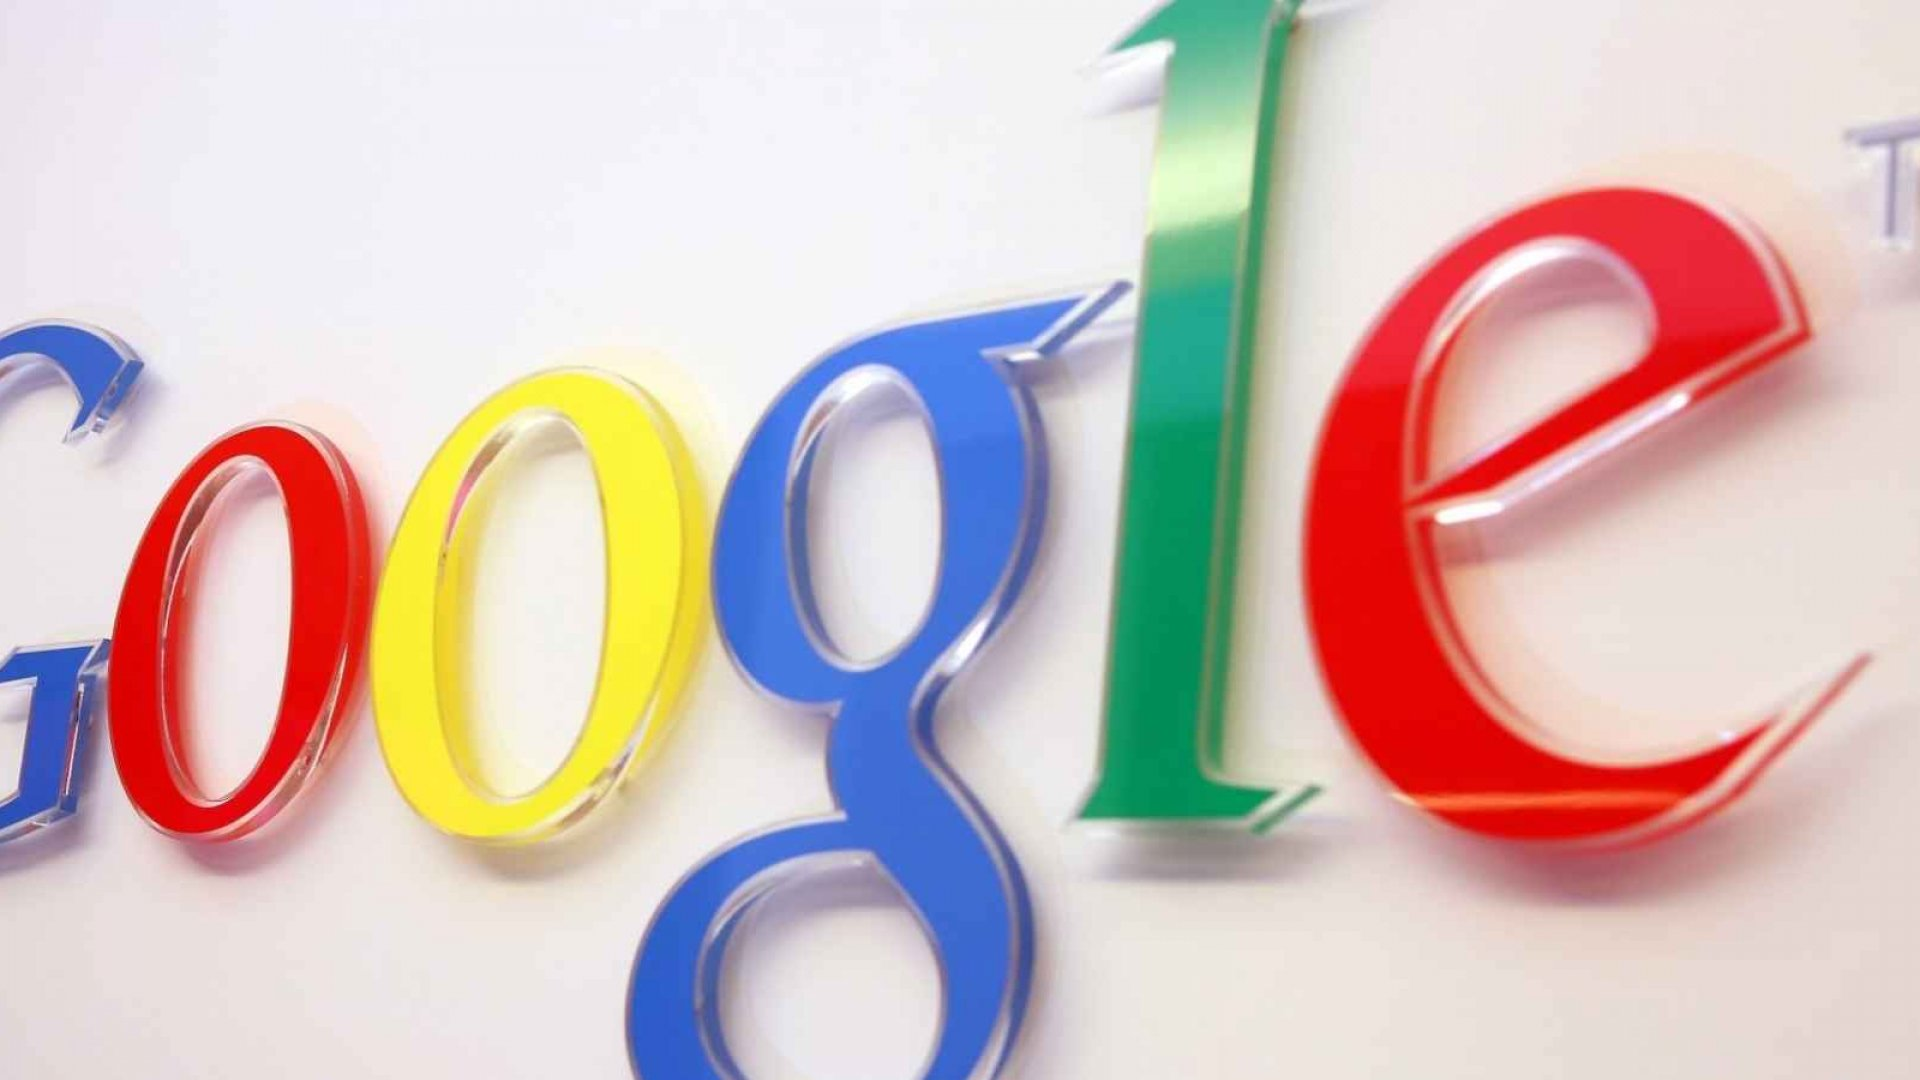 Oracle Loses Fight With Google in 'Fair Use' Case